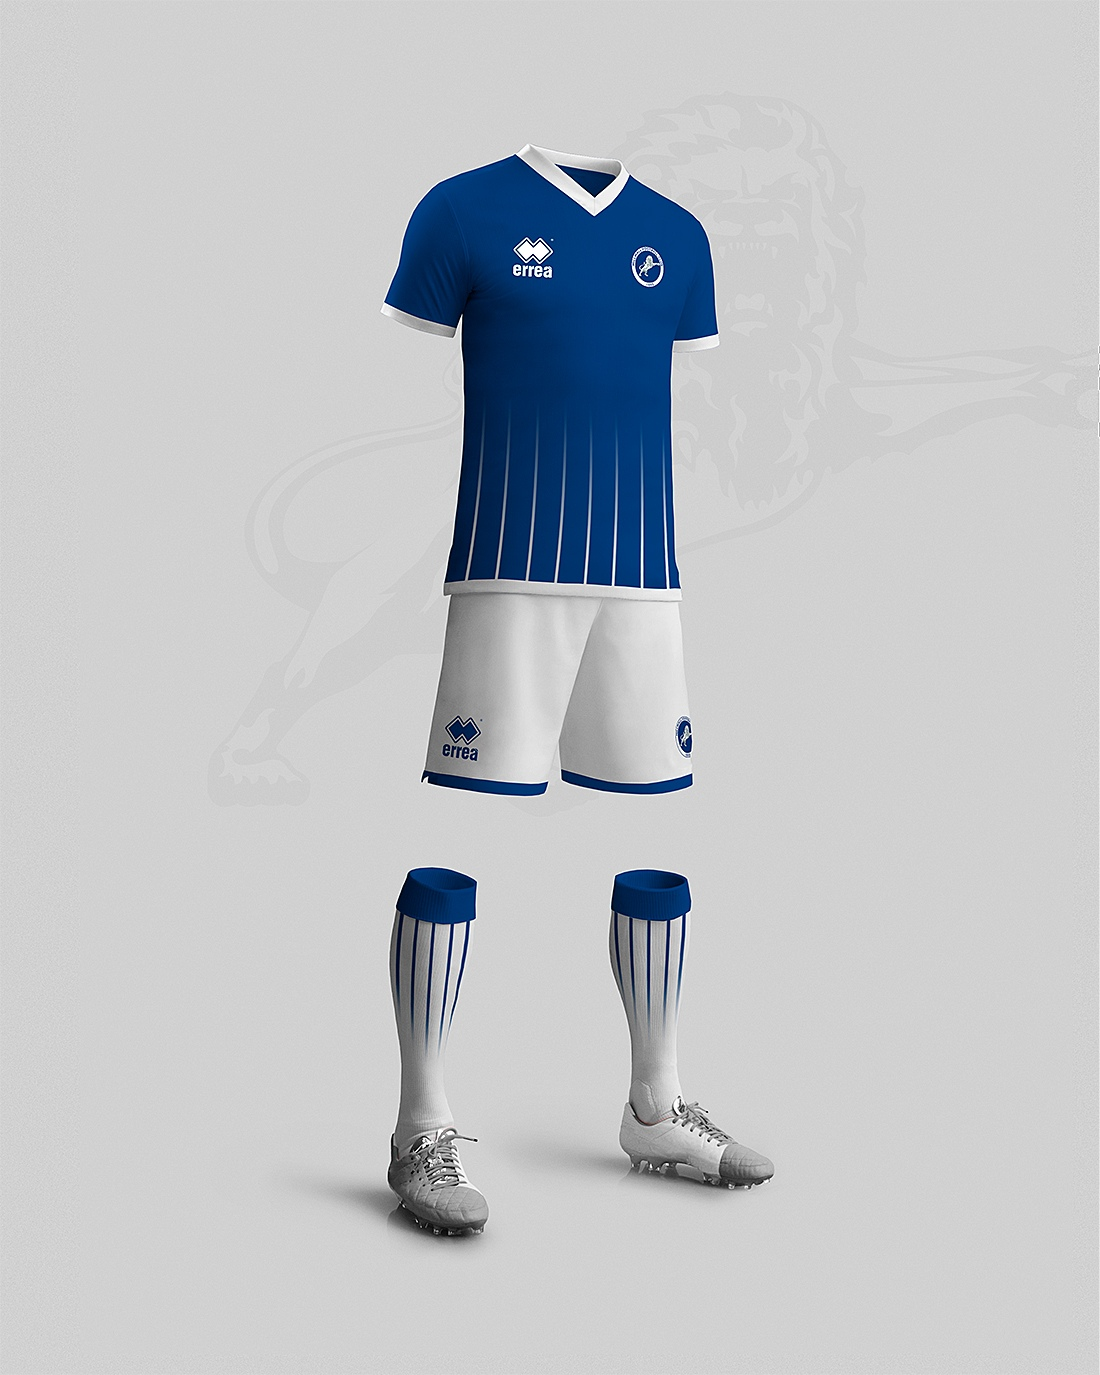 https://ponad.pl/wp-content/uploads/2016/04/millwall-home-kit-design.jpg